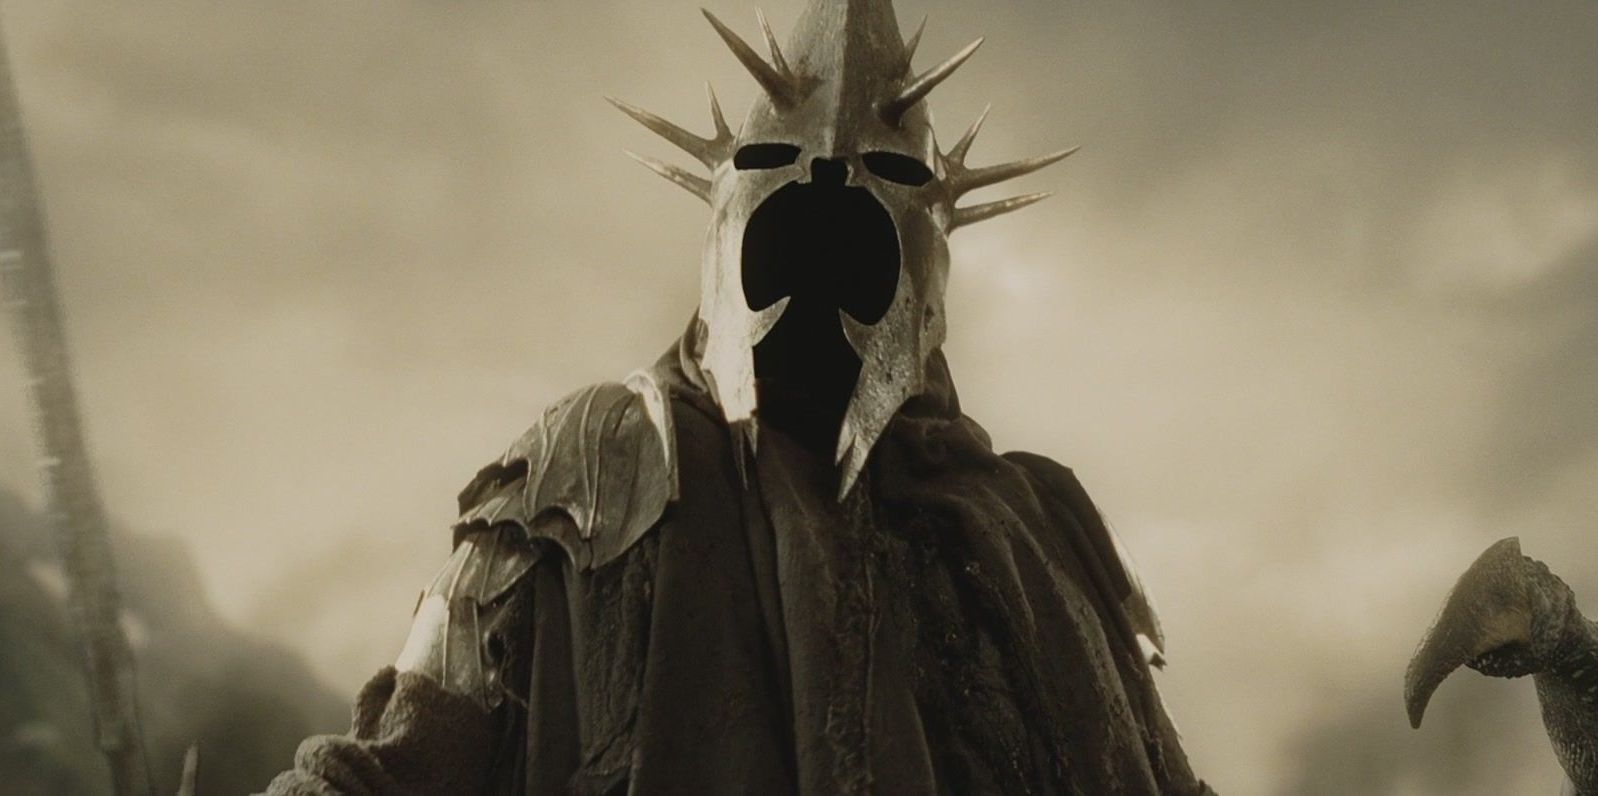 Lord Of The Rings: 20 Strangest Details About Witch-King's Anatomy